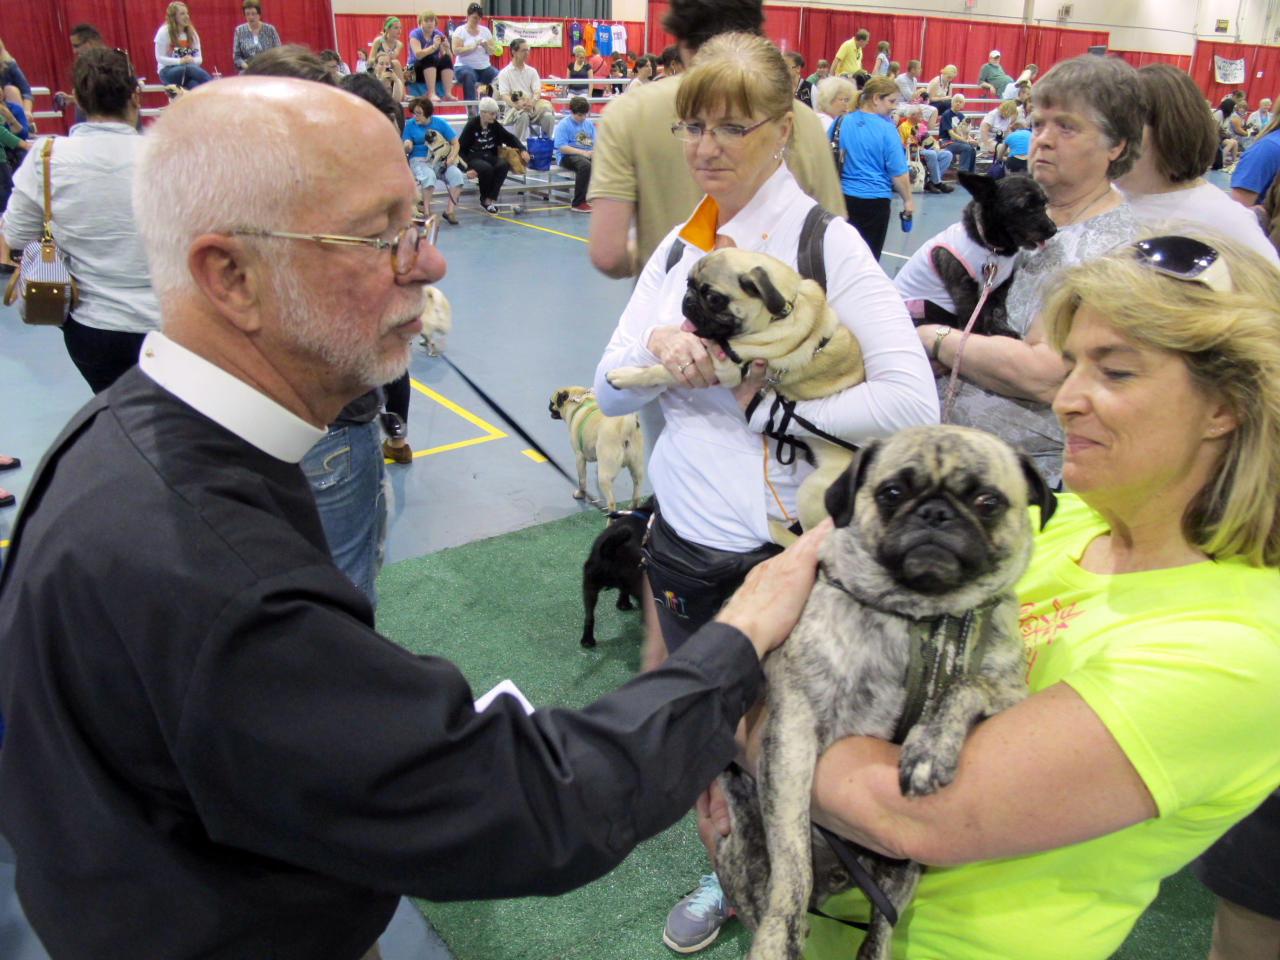 In this May 19, 2013, photo Father John Allen blesses Chip, who is being held by Lisa Erdmann, at Milwaukee Pug Fest in Franklin, Wis. The annual event, that helps pay for medical and dental bills for rescued pugs, attracted more than 1,700 pugs and other smushy-faced dogs along with 2,900 humans from the U.S. and Canada.  (AP Photo/Carrie Antlfinger)